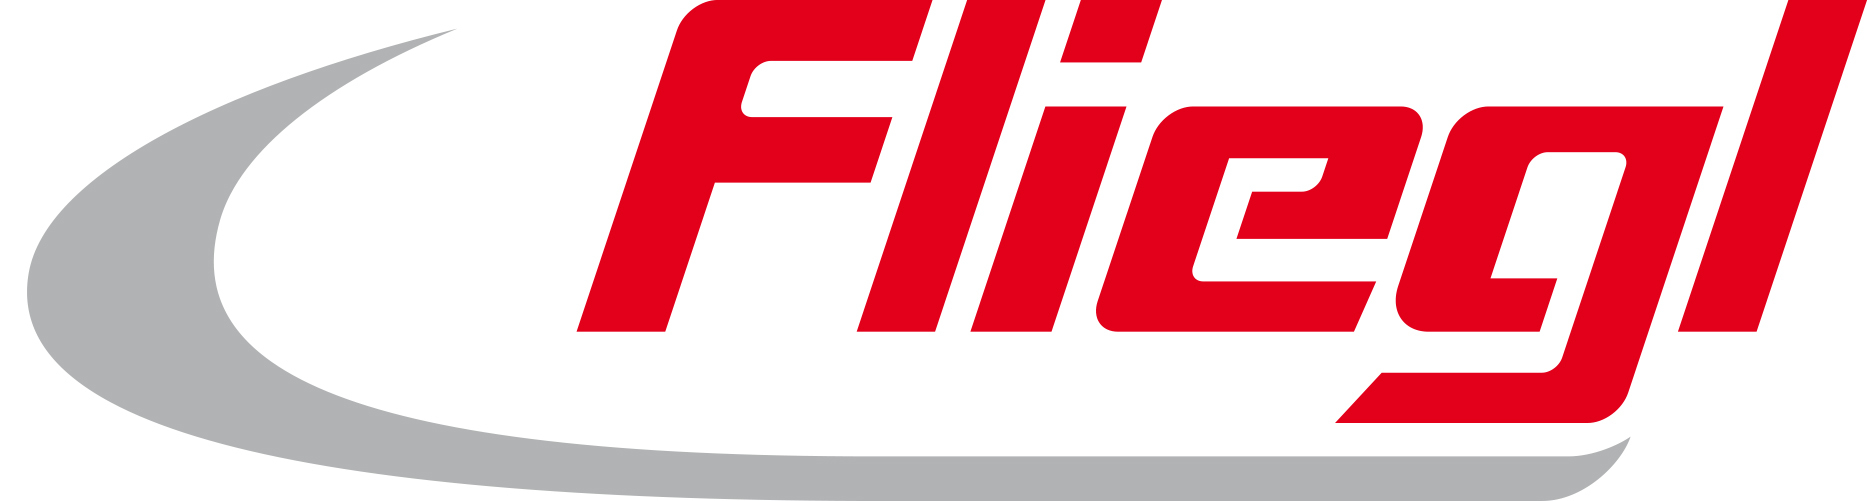 Fliegl Abda Ltd.